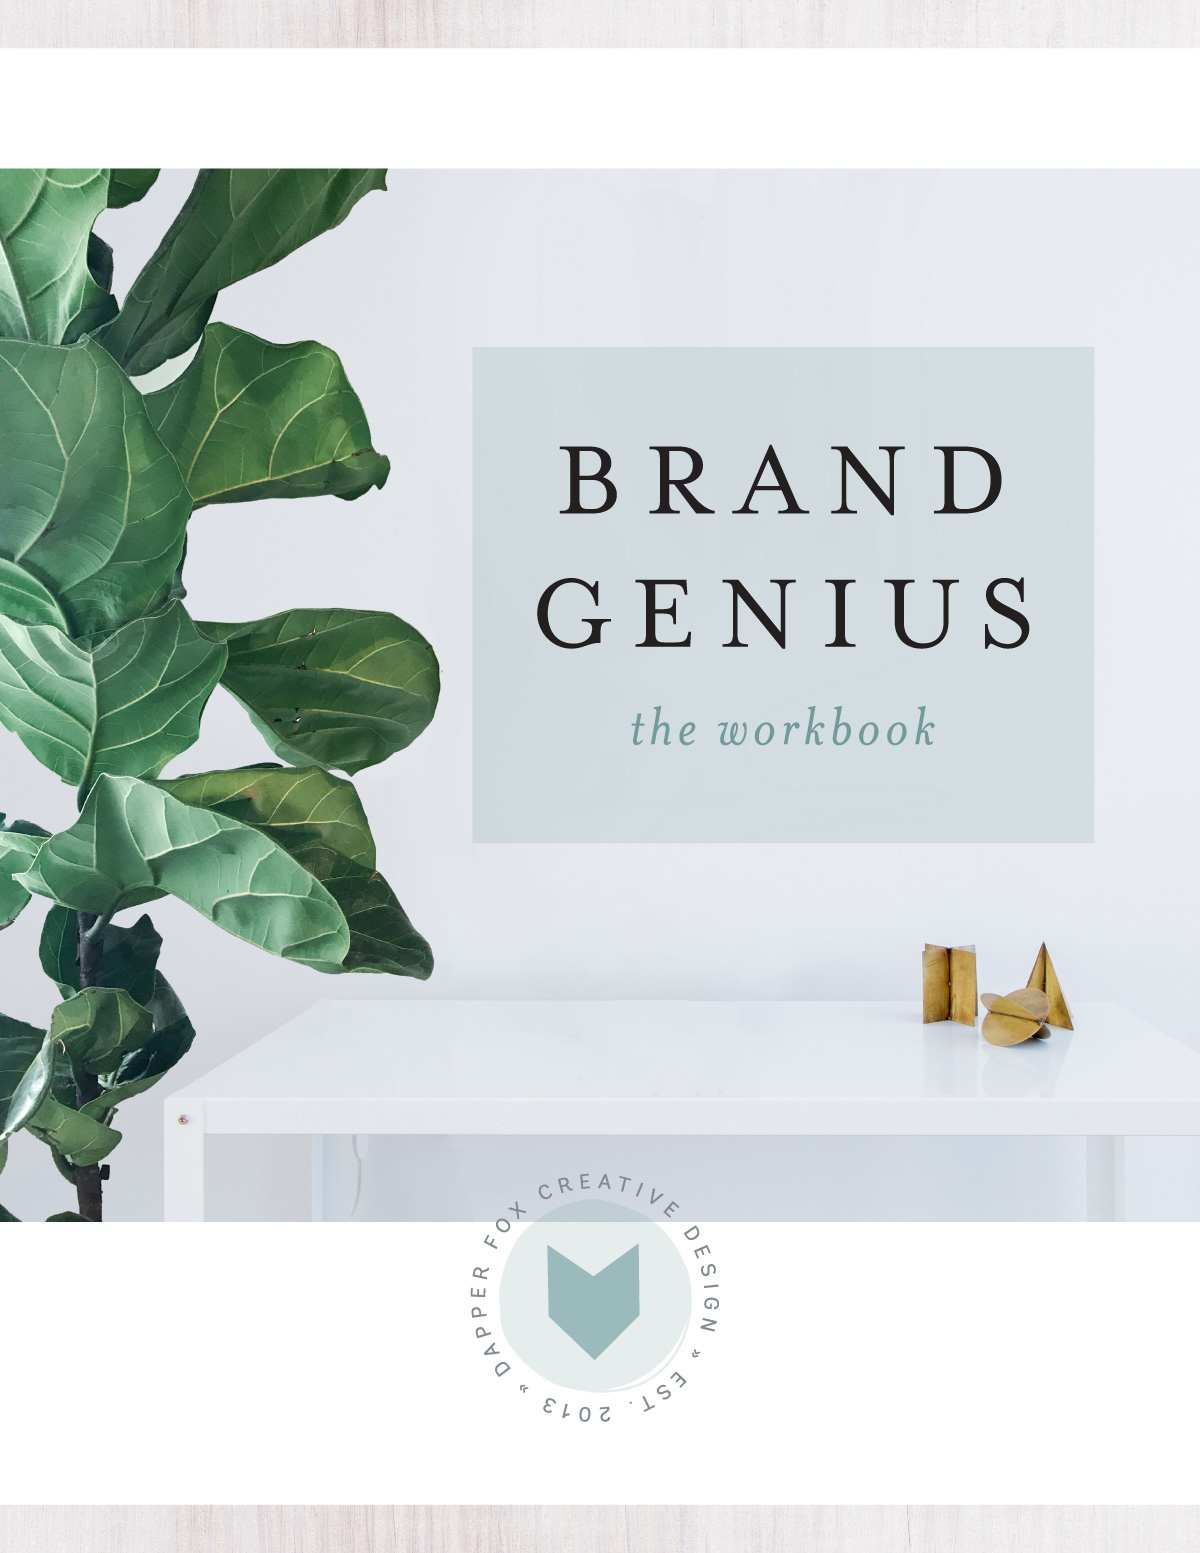 Brand-Genius-Workbook-Cover.jpg